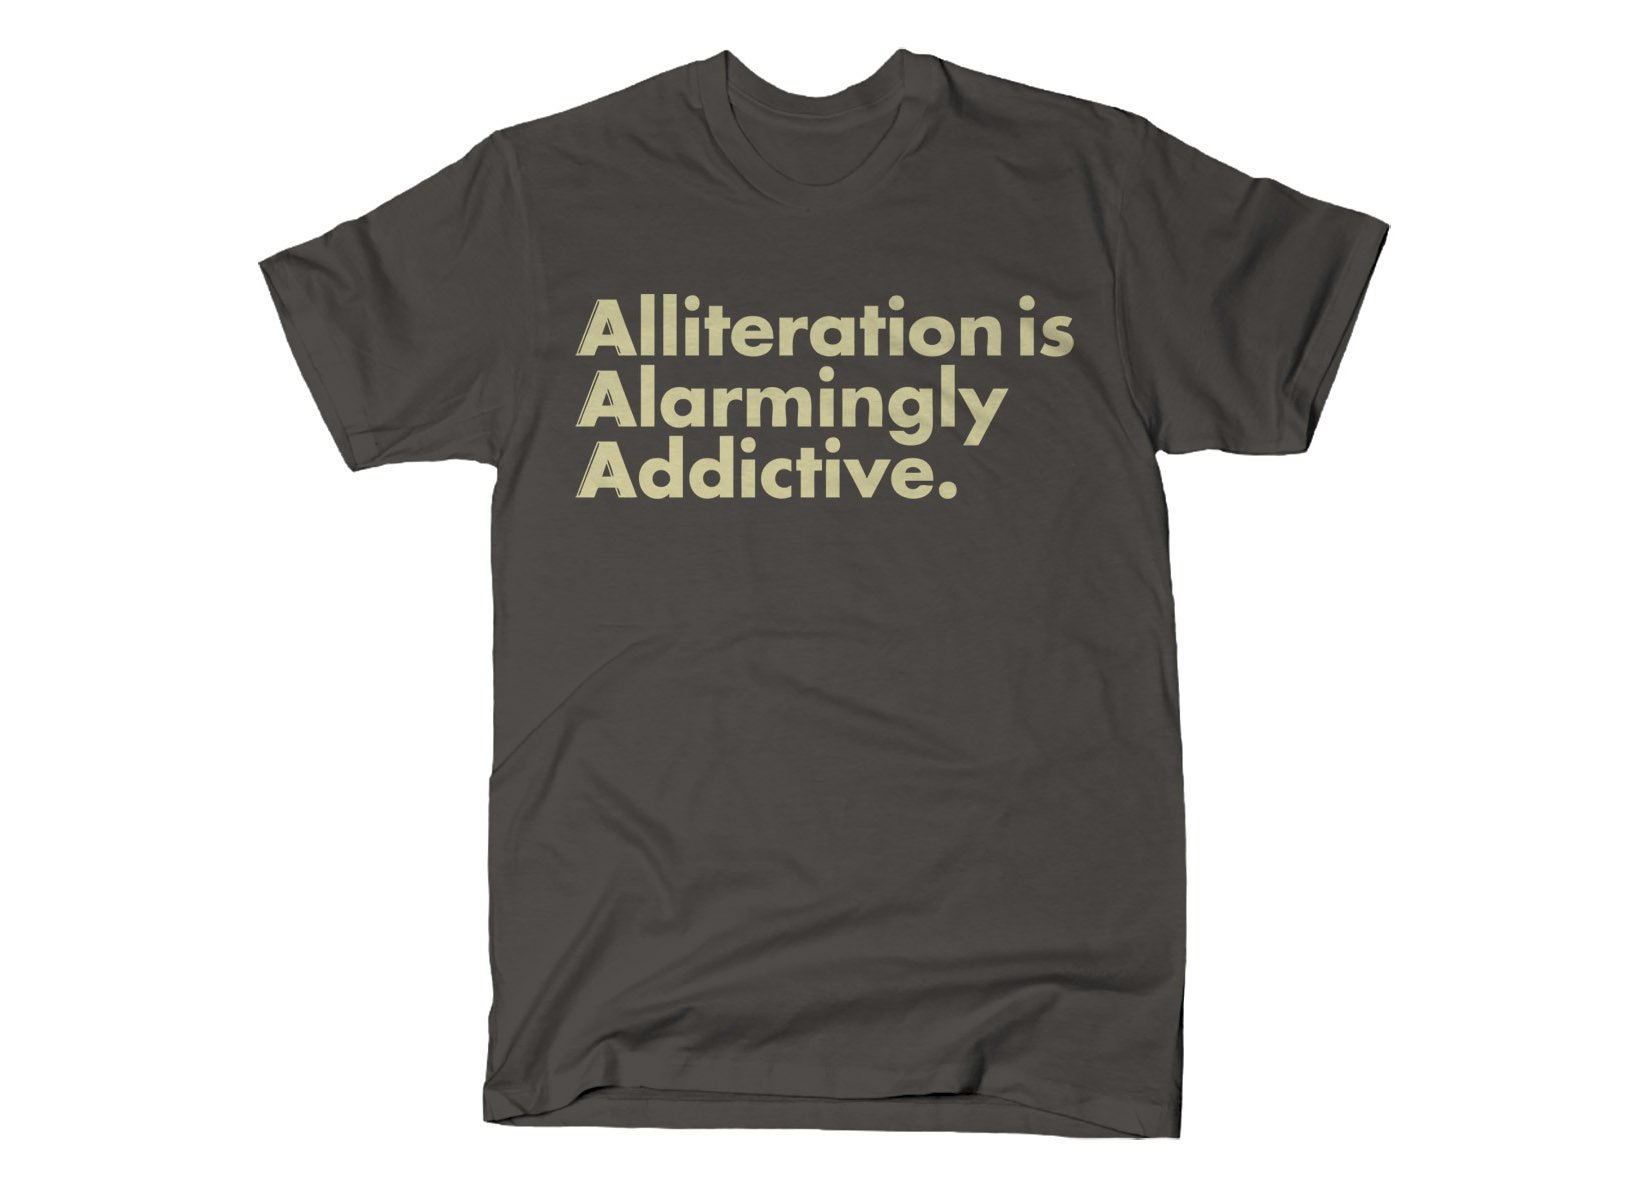 Alliteration Is Alarmingly Addictive on Mens T-Shirt